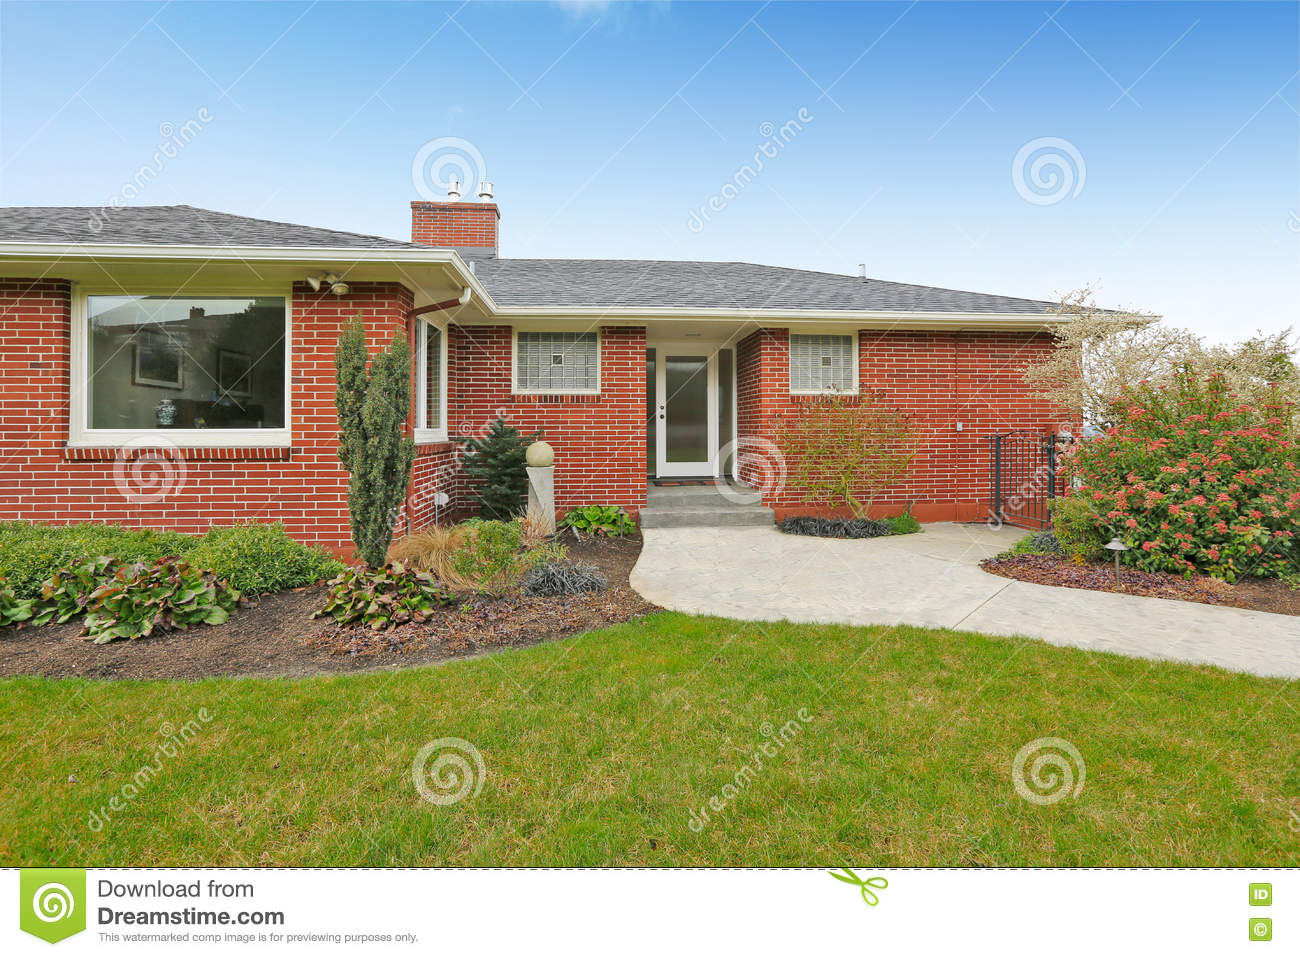 Red brick house with tile roof front view red brick house with tile roof